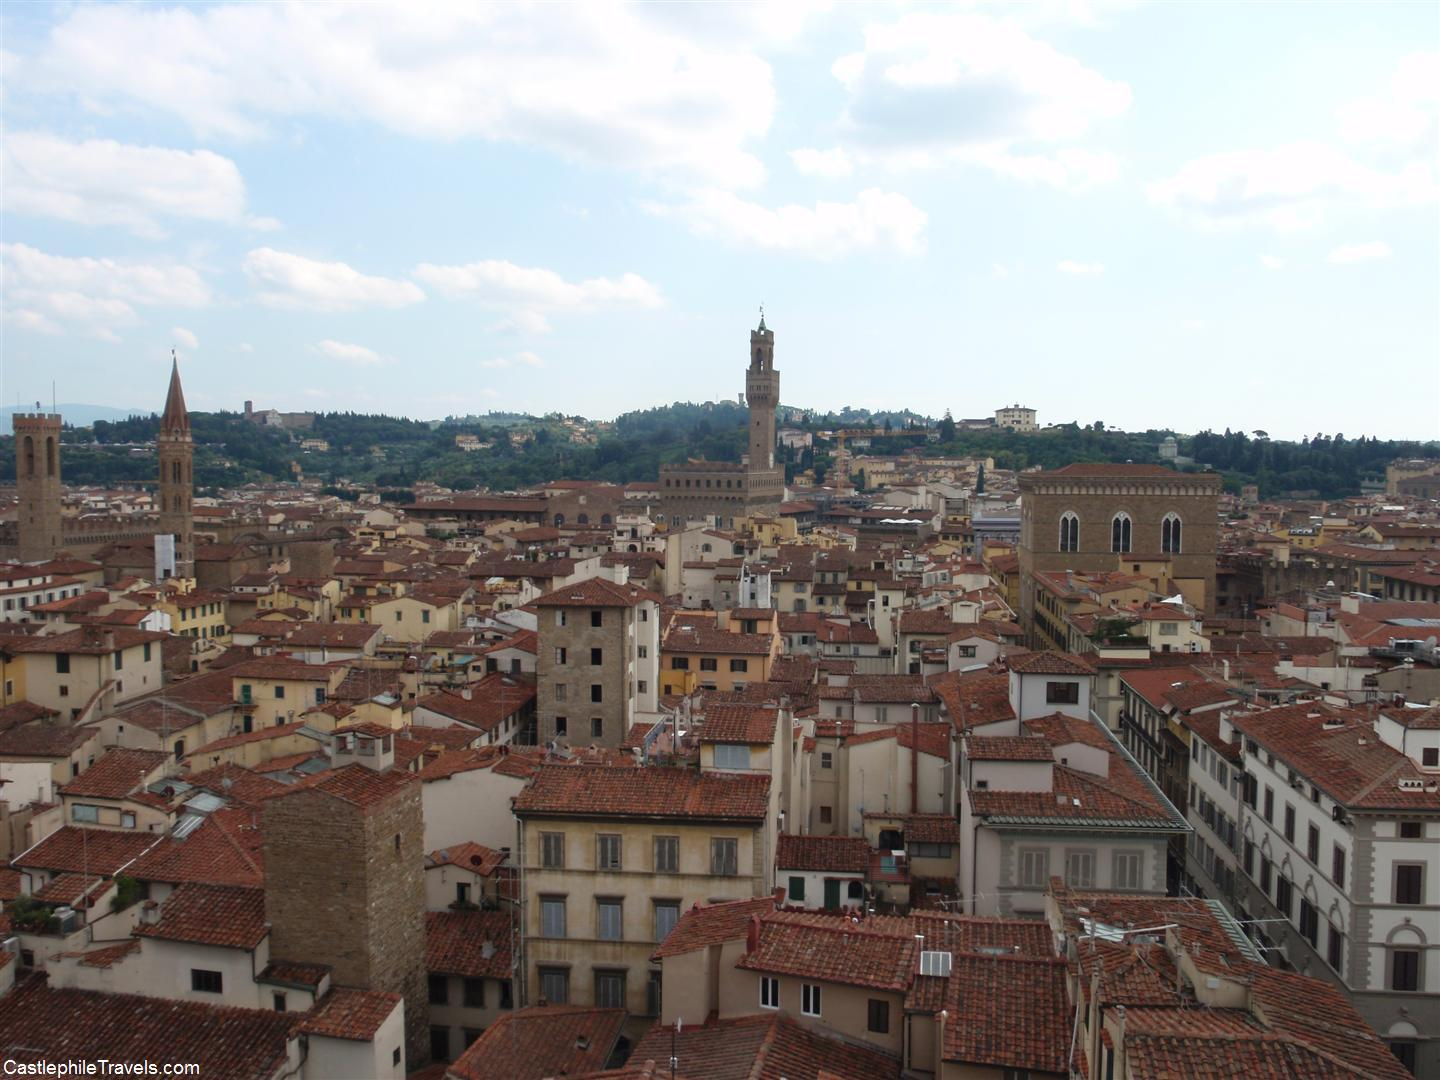 The tower of the Palazzo Vecchio pops up above the red rooves of Florence